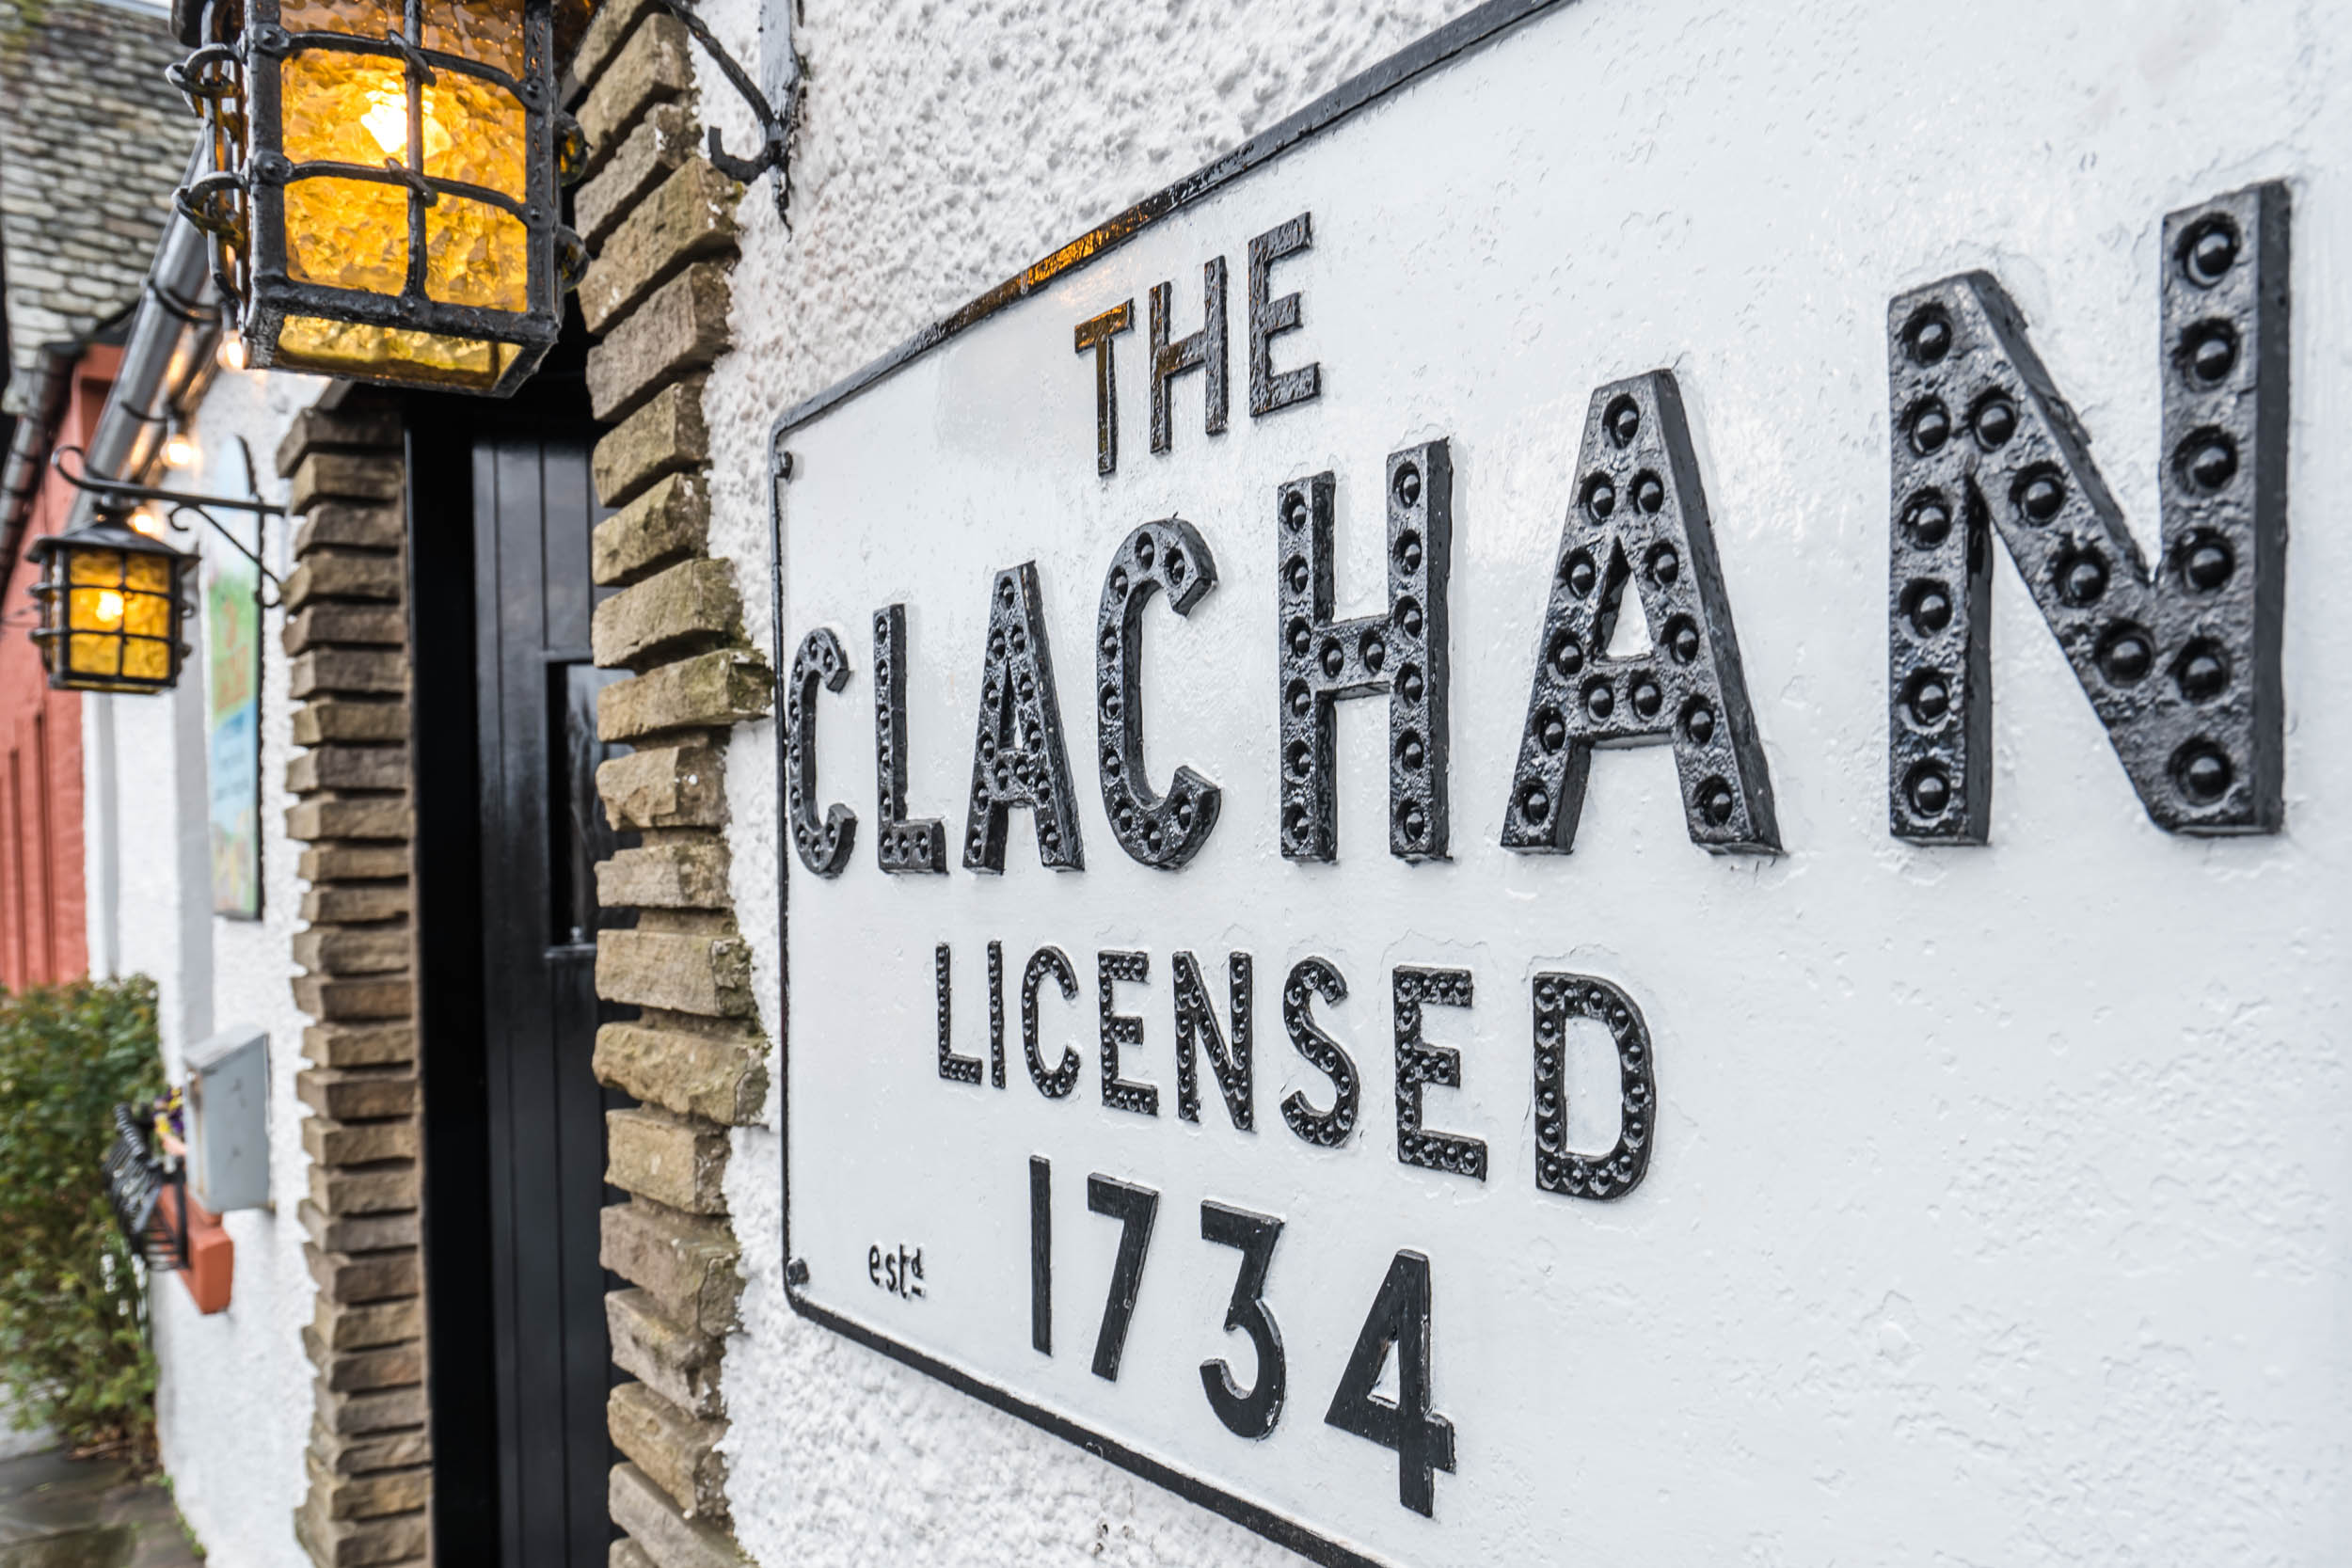 Scotland's Oldest Licensed Pub